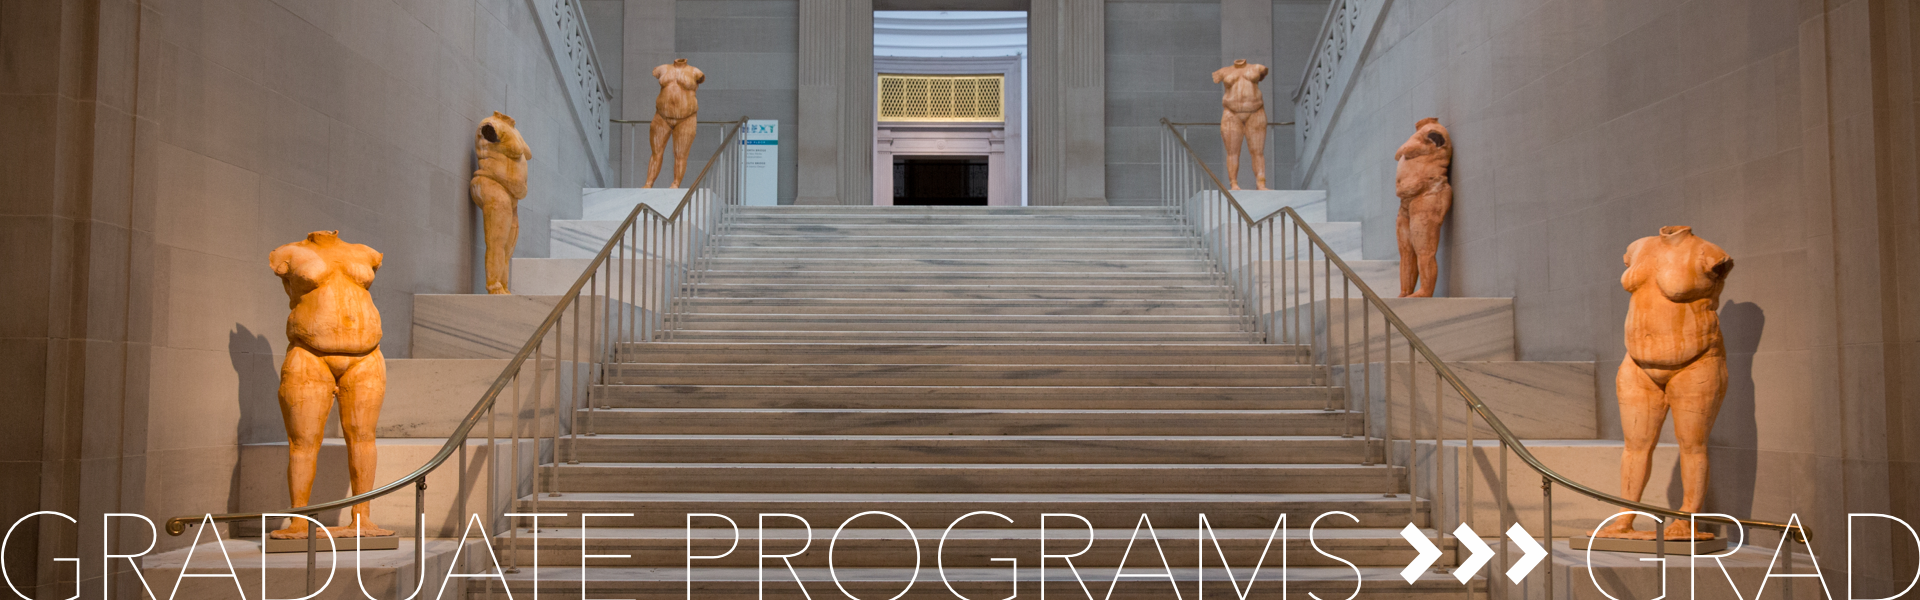 Graduate Programs; Statues line the stairs leading to an exhibition space